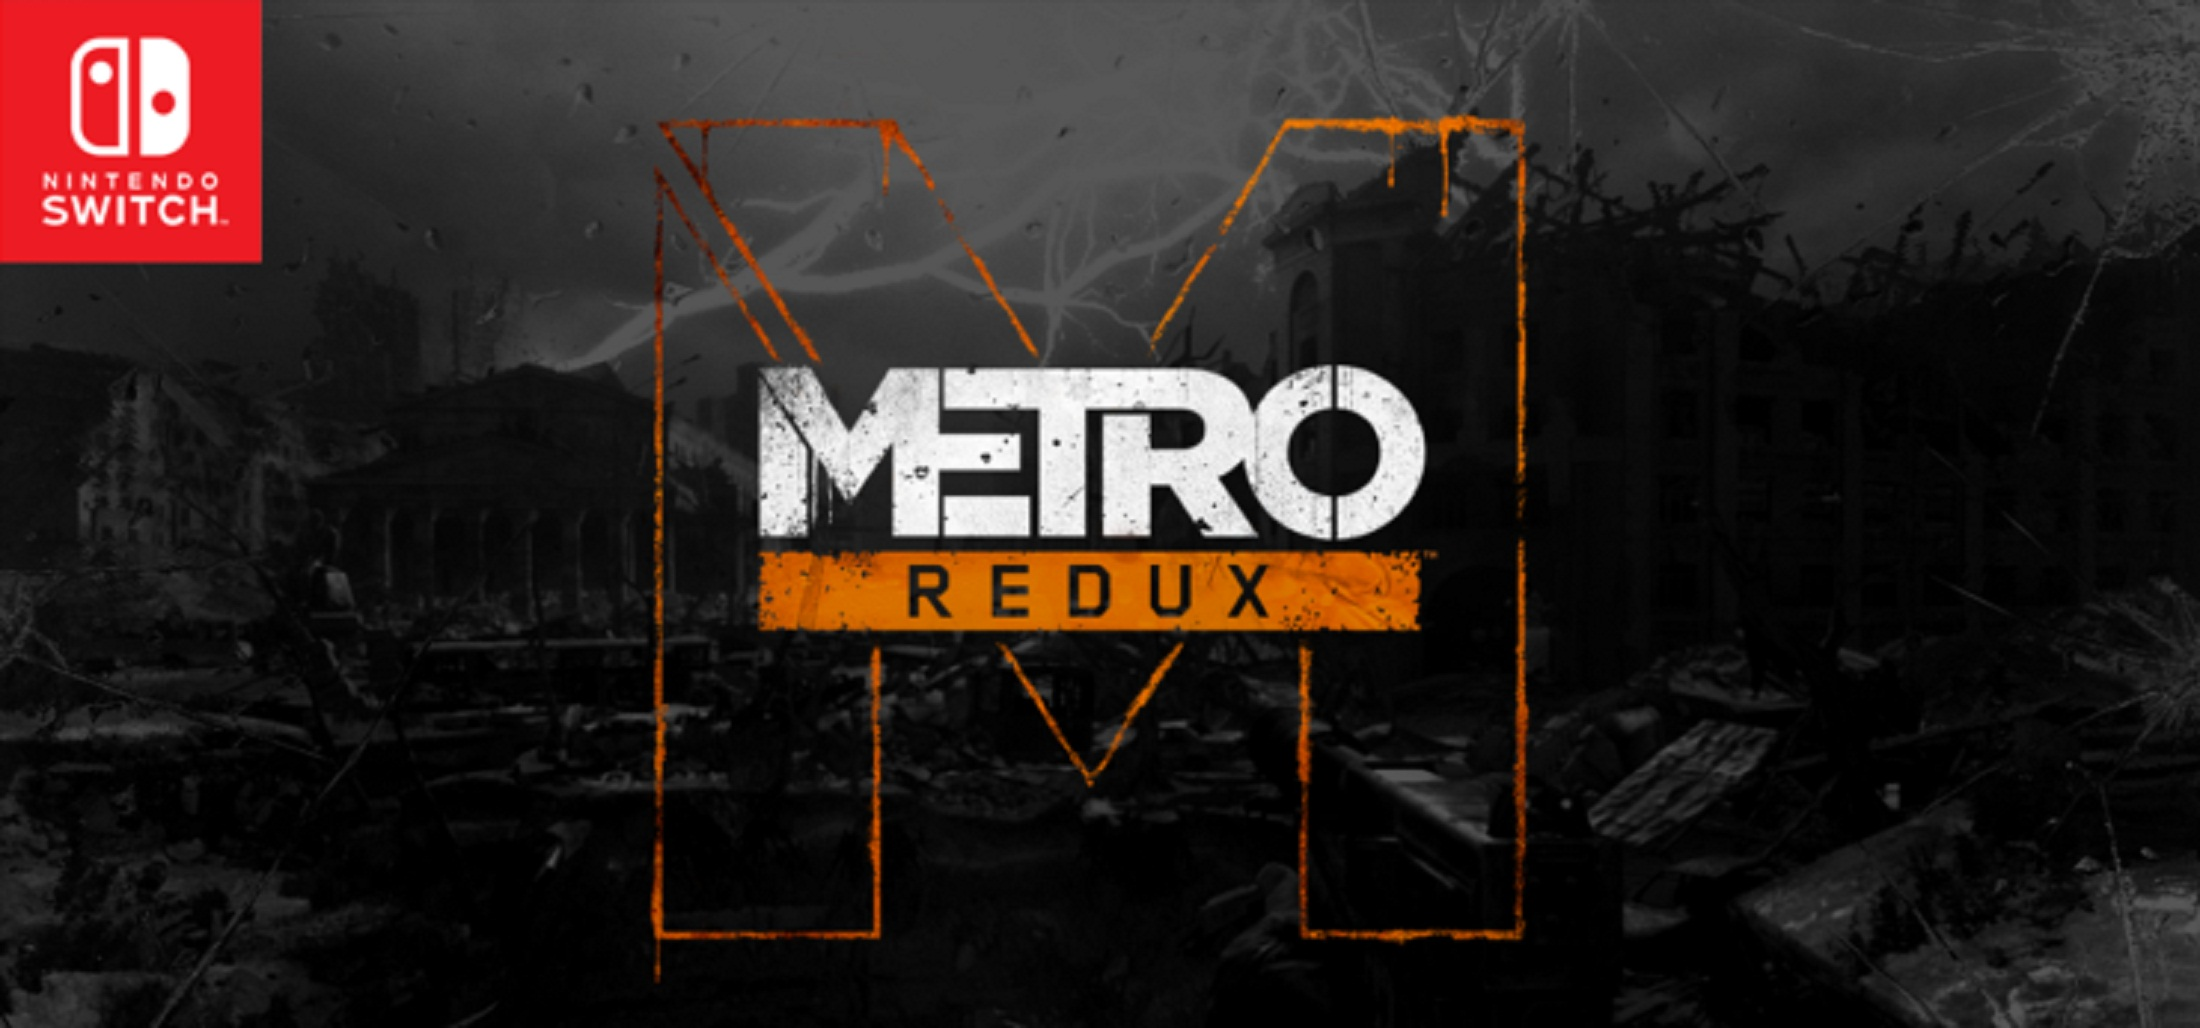 Exclusive: Metro Redux Switch Would Likely Run Portably At A Locked 30FPS In 720p And Also Up To 1080p Docked